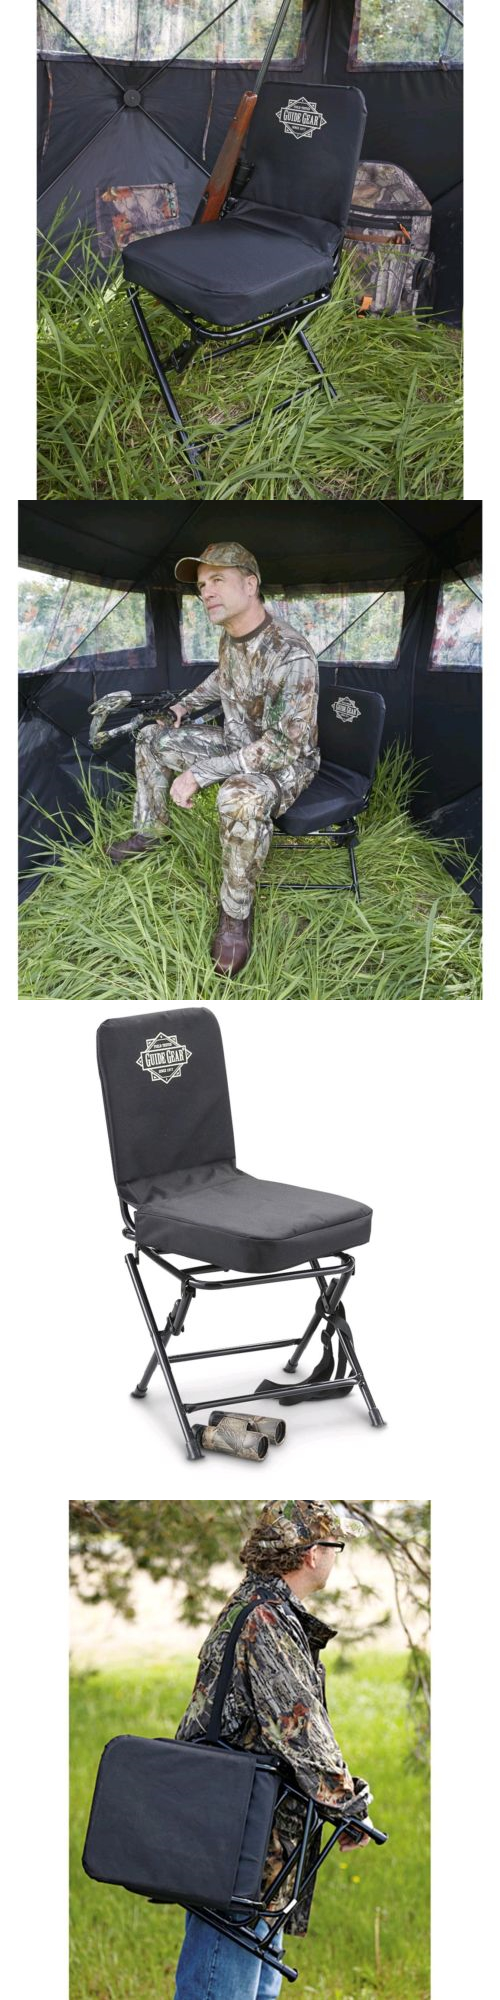 Seats and Chairs 52507 Portable Swivel Hunting Chair Folding Deer Stool Turkey Padded New & Seats and Chairs 52507: Portable Swivel Hunting Chair Folding Deer ...